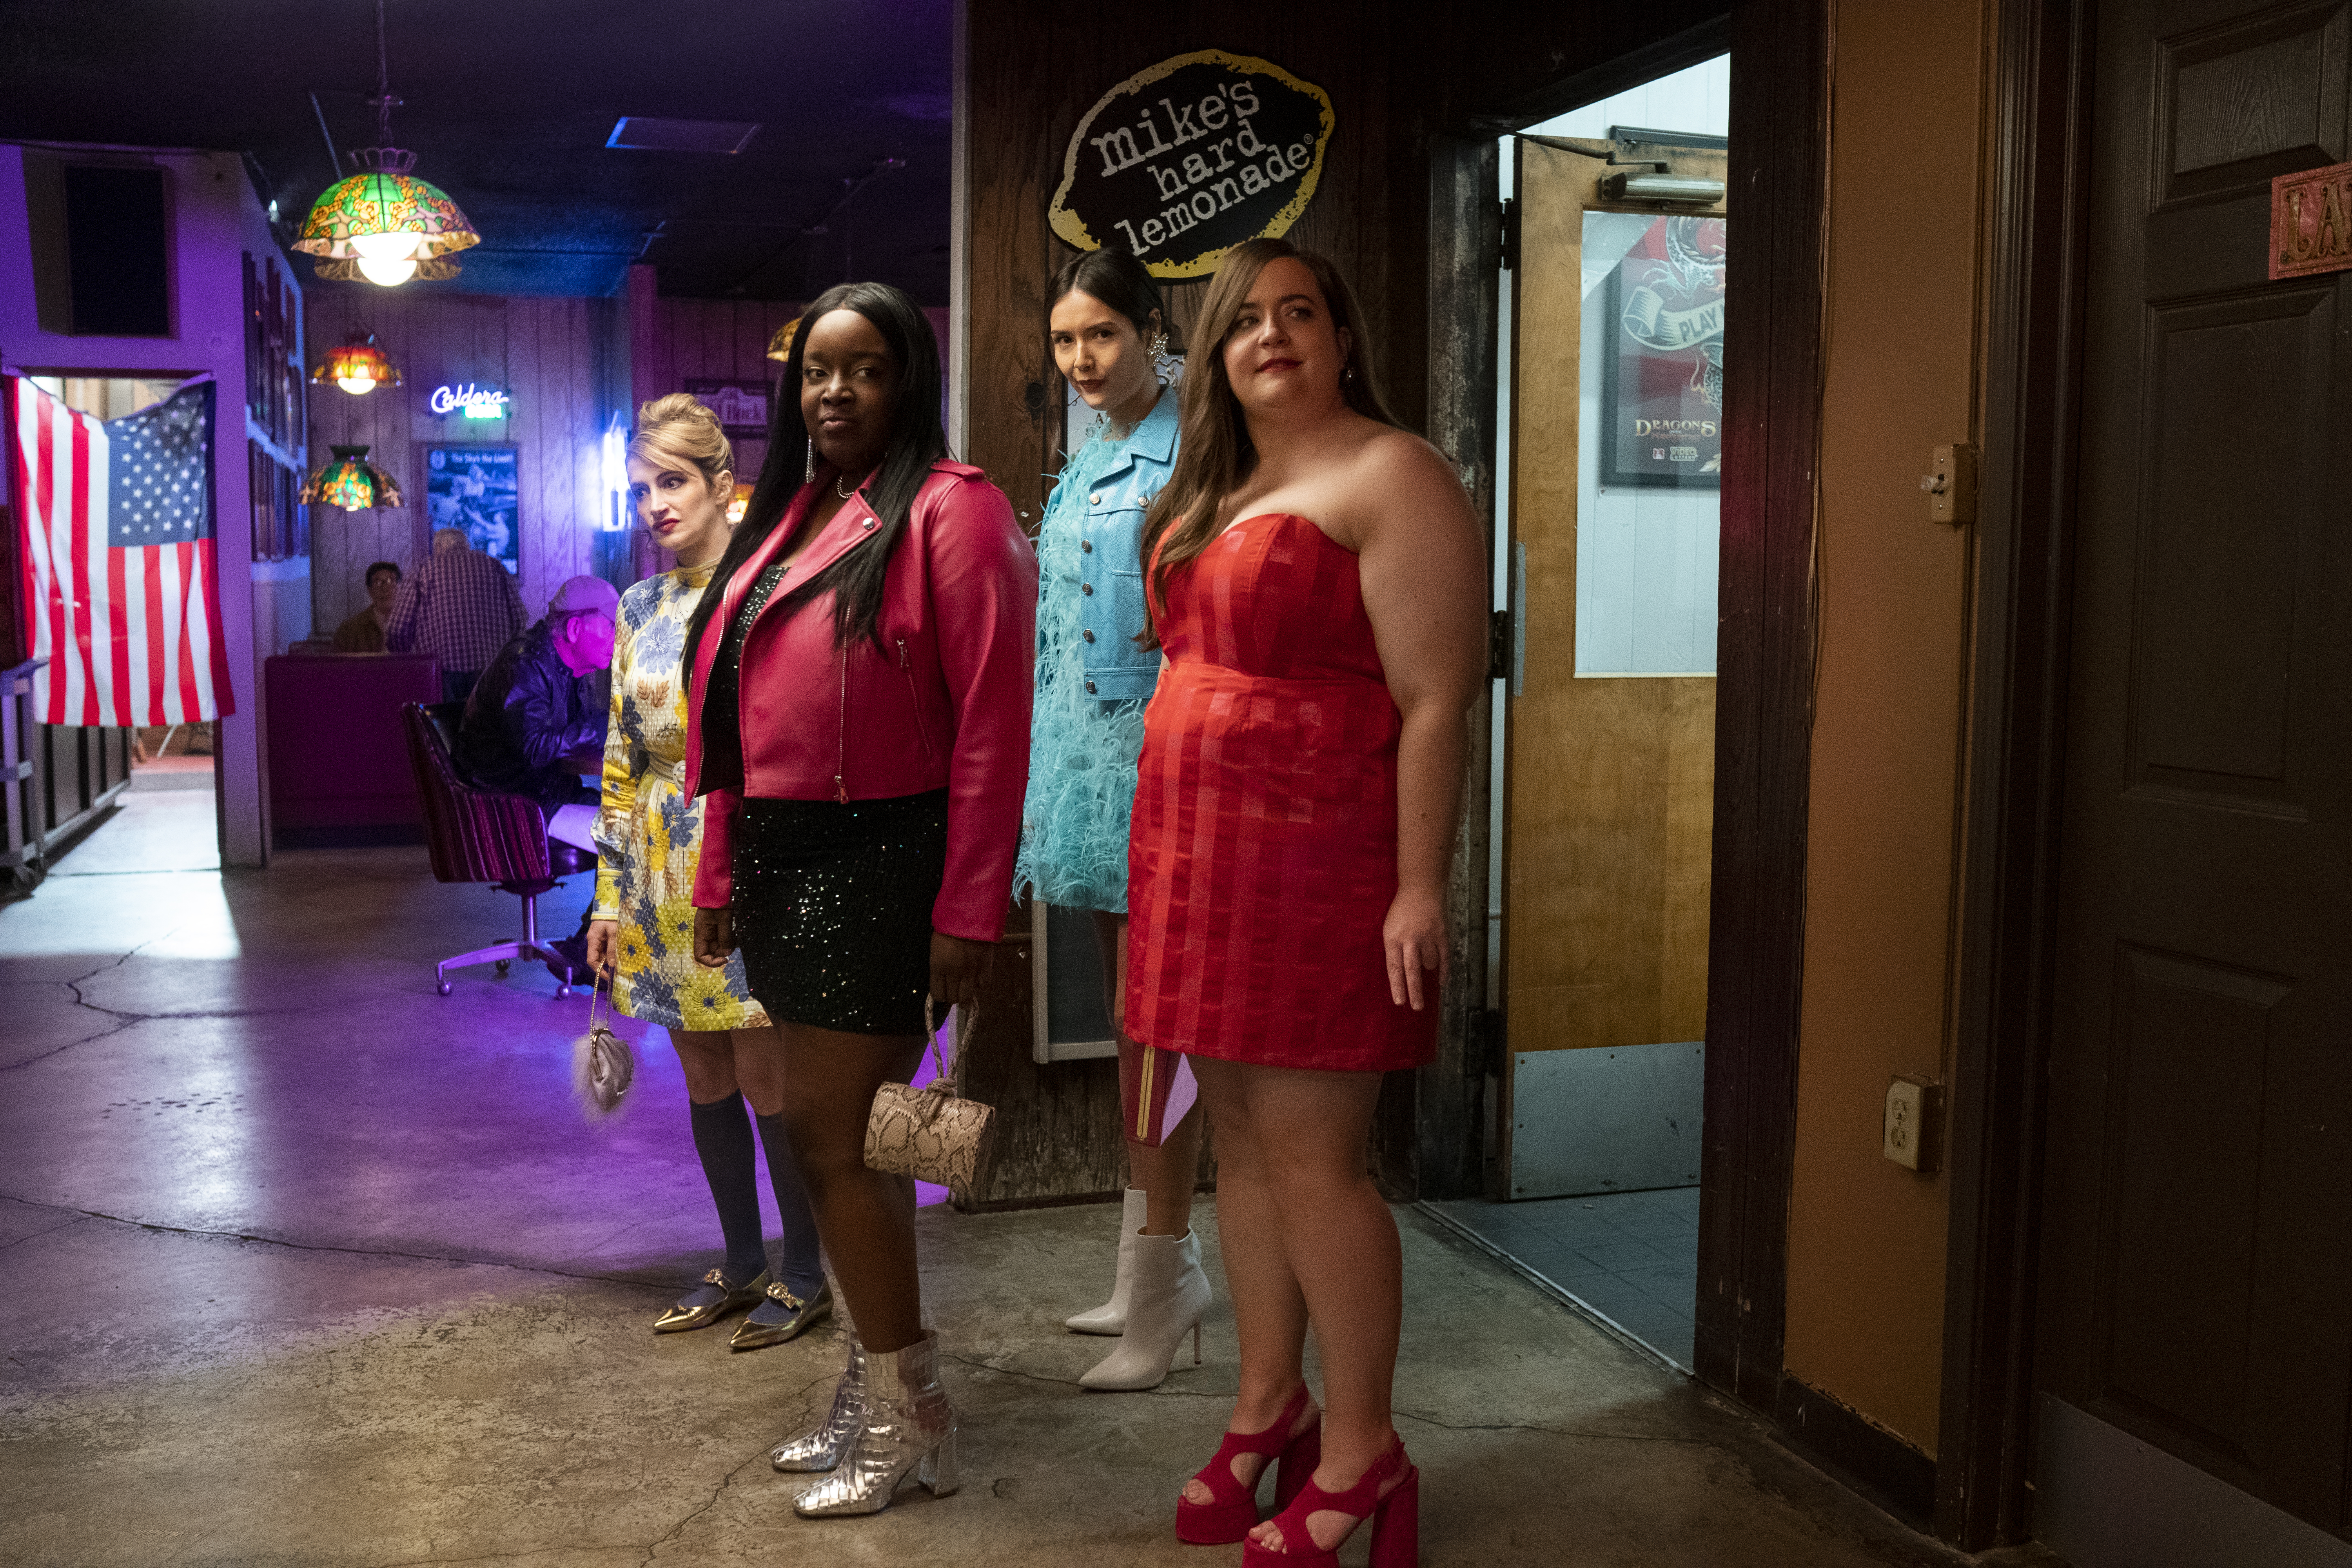 SHRILL -- Episode 303 - Annie demands more hard-hitting assignments at the Thorn's annual creative retreat. Fran has trouble making friends at her new job. Annie, Fran, Ruthie, and Maureen have a girls' night out to help Annie get her mind off Nick. Maureen (Jo Firestone), Fran (Lolly Adefope), Ruthie (Patti Harrison), Annie (Aidy Bryant), shown. (Photo by: Allyson Riggs/Hulu)